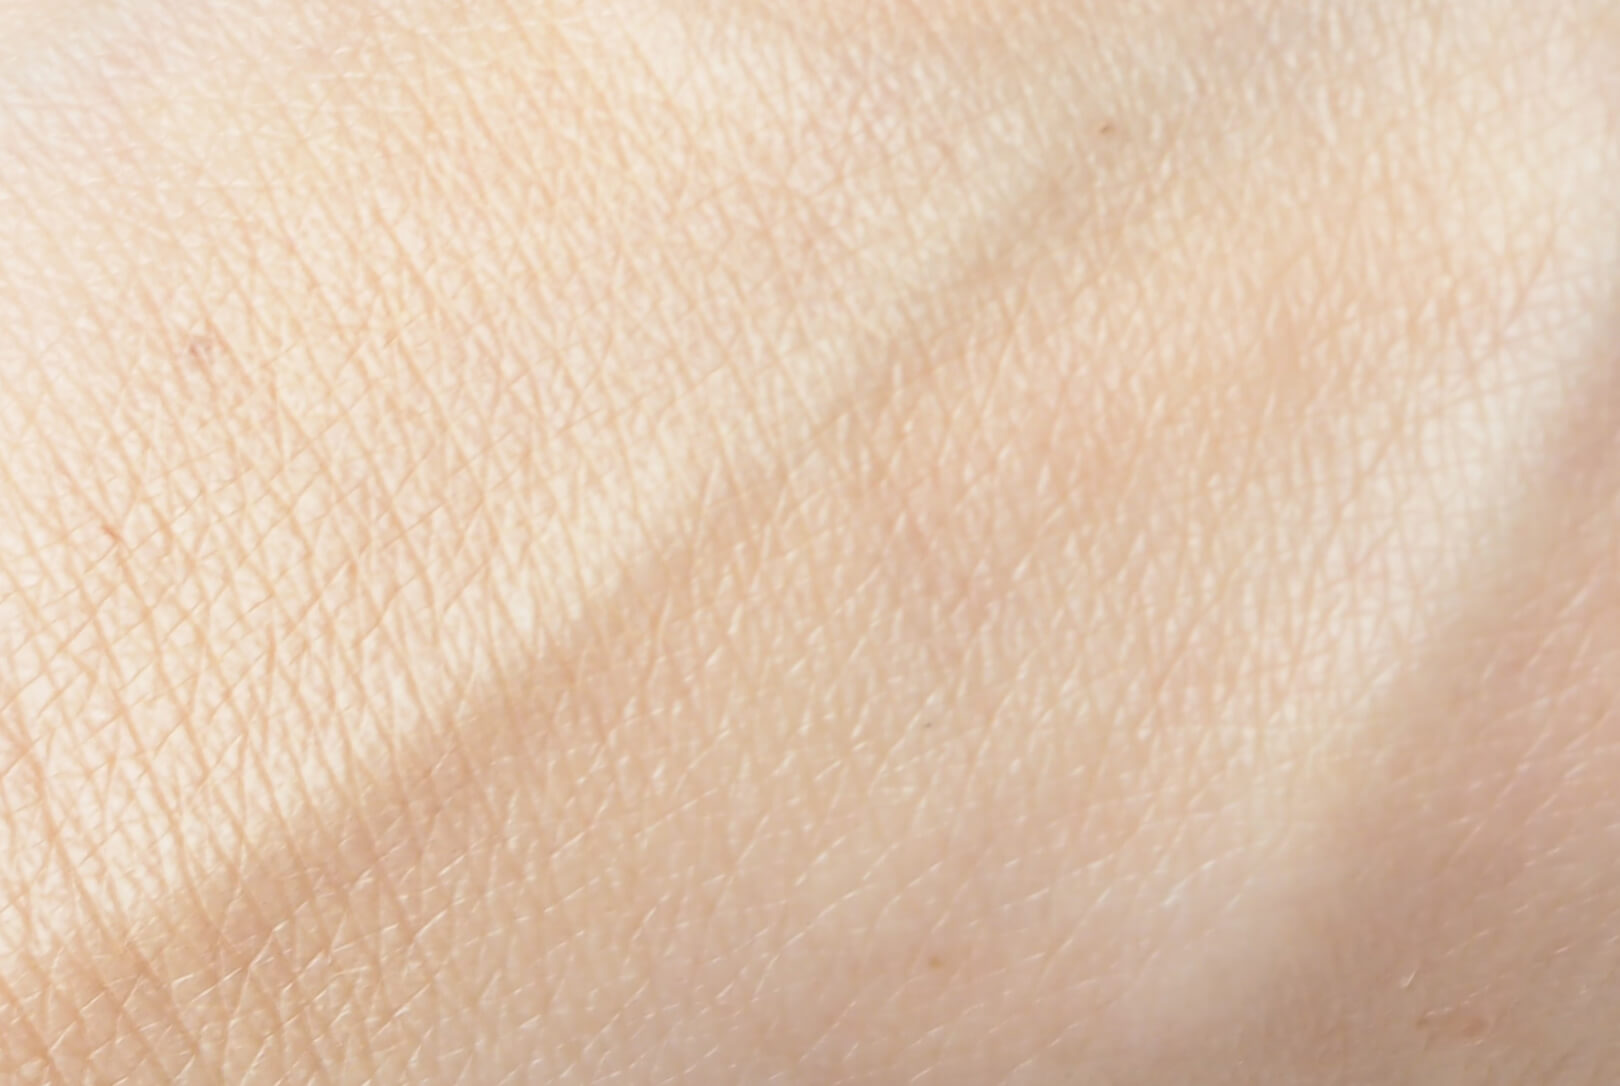 Swatch BOBBI BROW FOUNDATION STICK 2 SAND